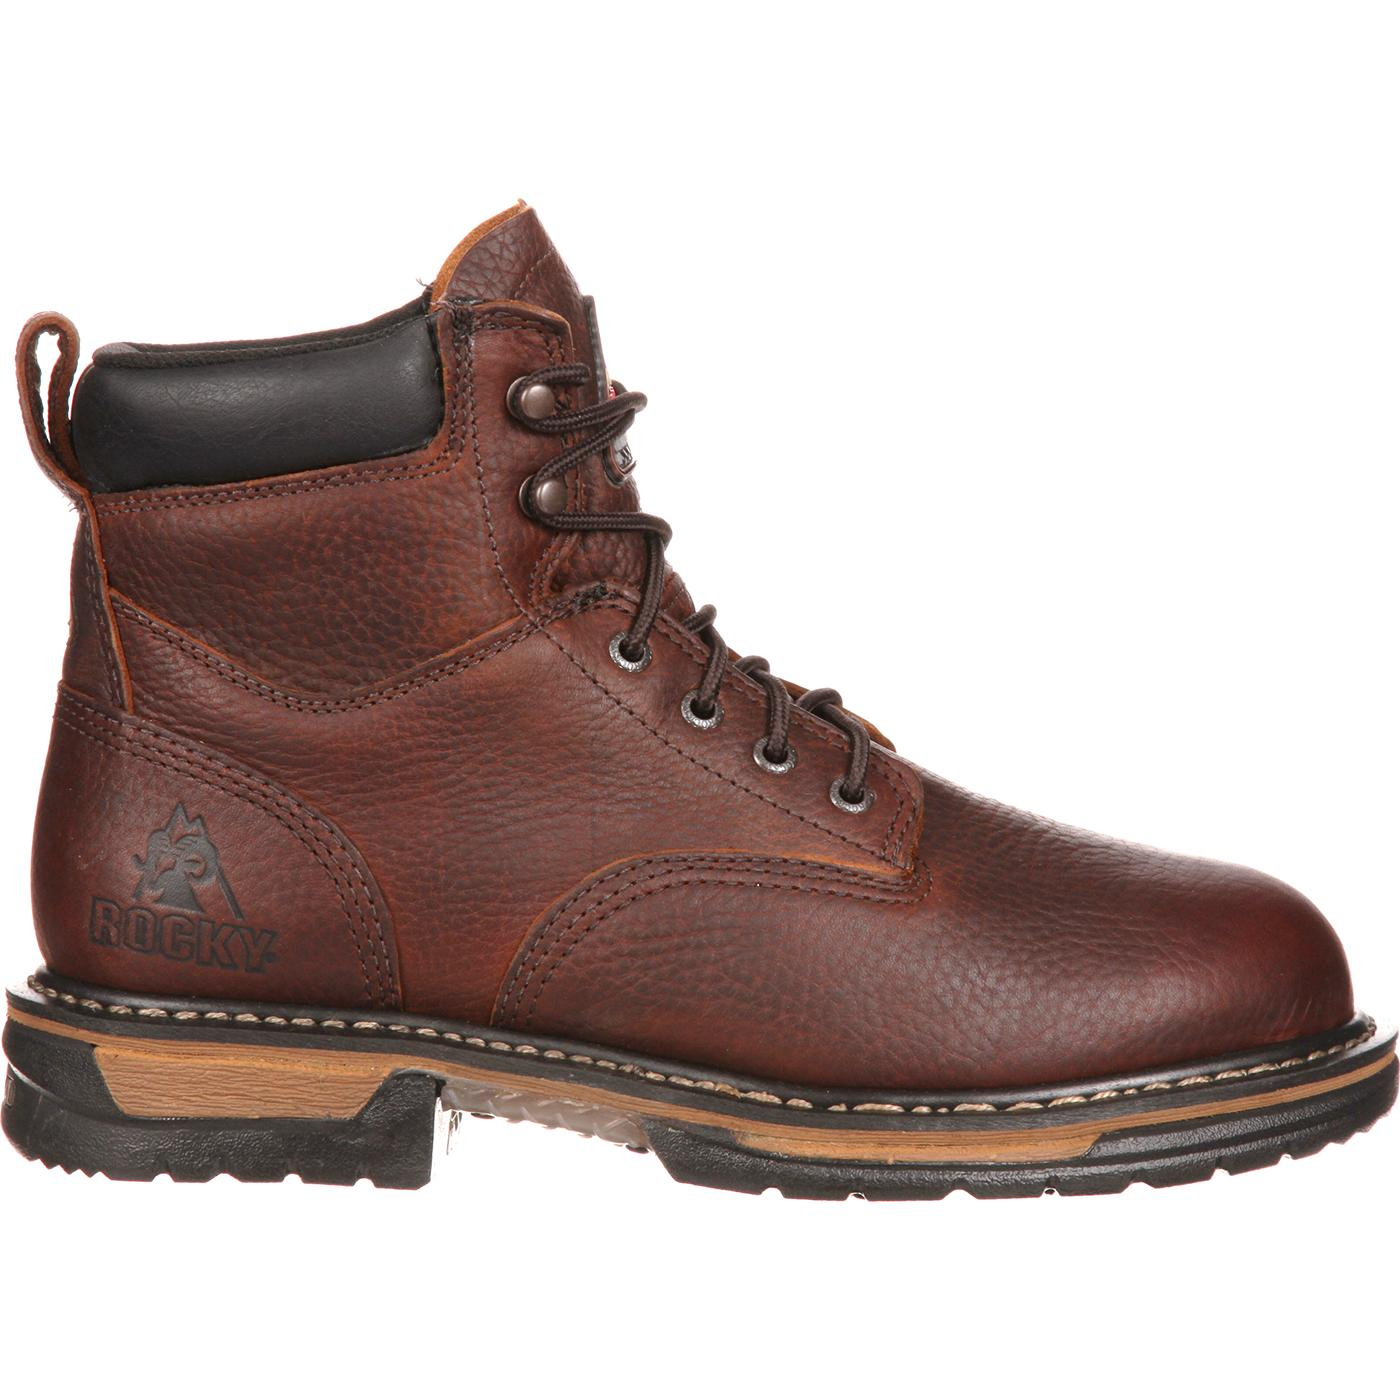 5d7bc3f12dc Rocky IronClad Waterproof Work Boot